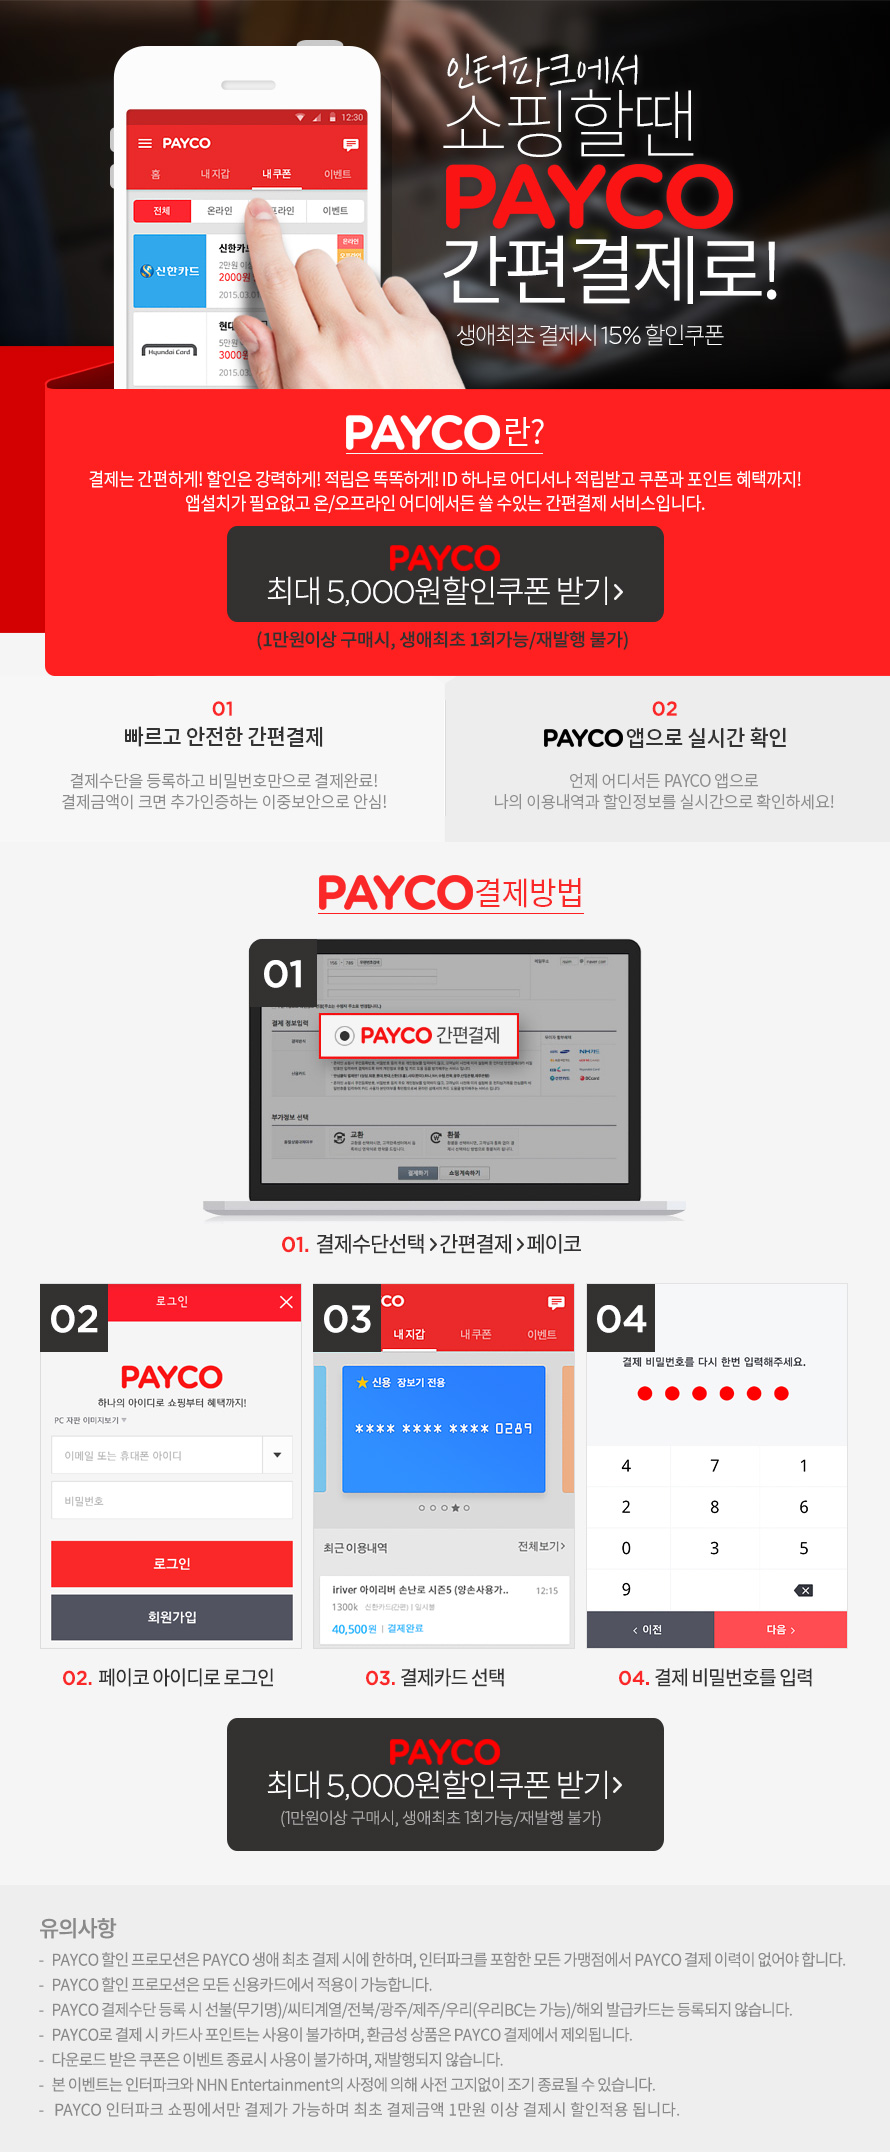 http://openimage.interpark.com/2015/mall/event/150909_payco/150925_01.jpg